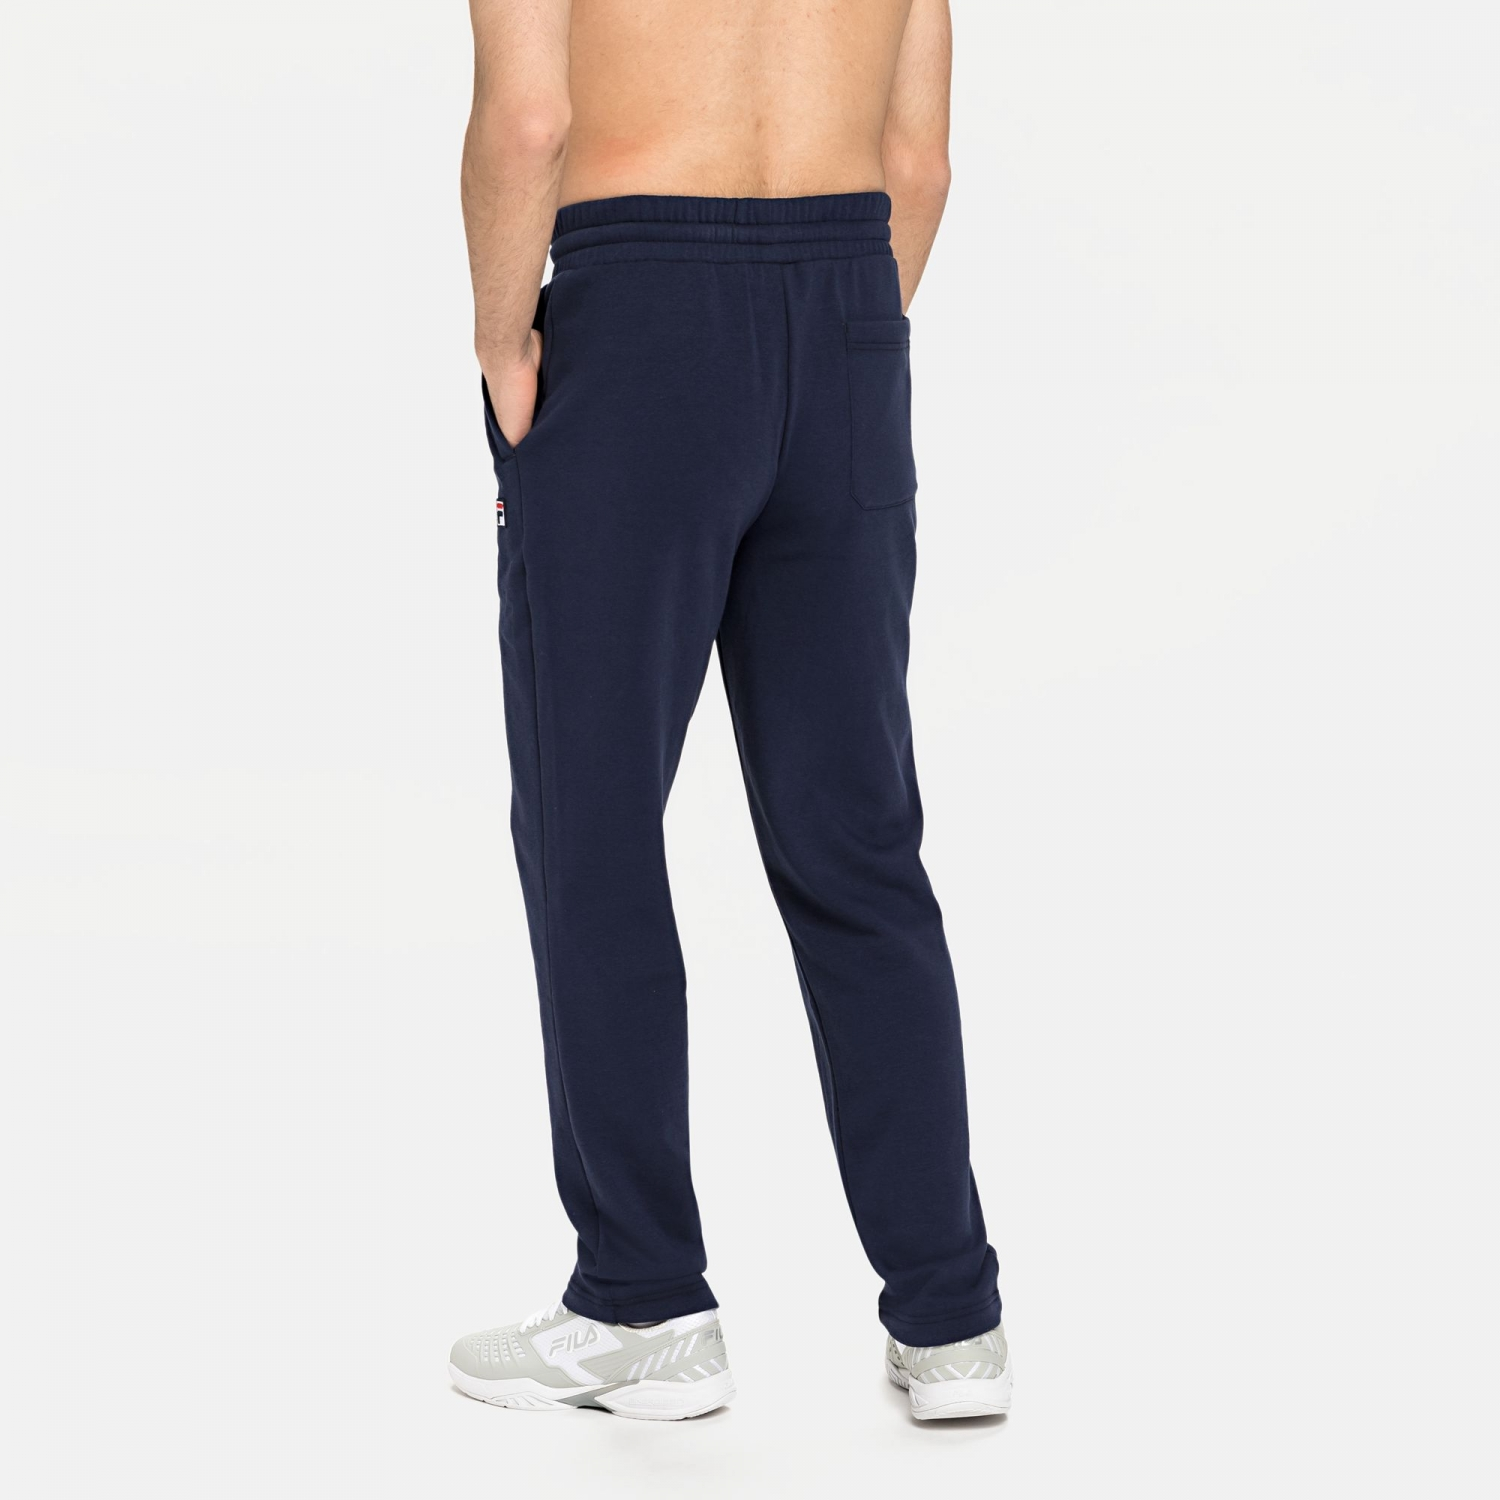 Fila Sweatpant Larry Bild 2